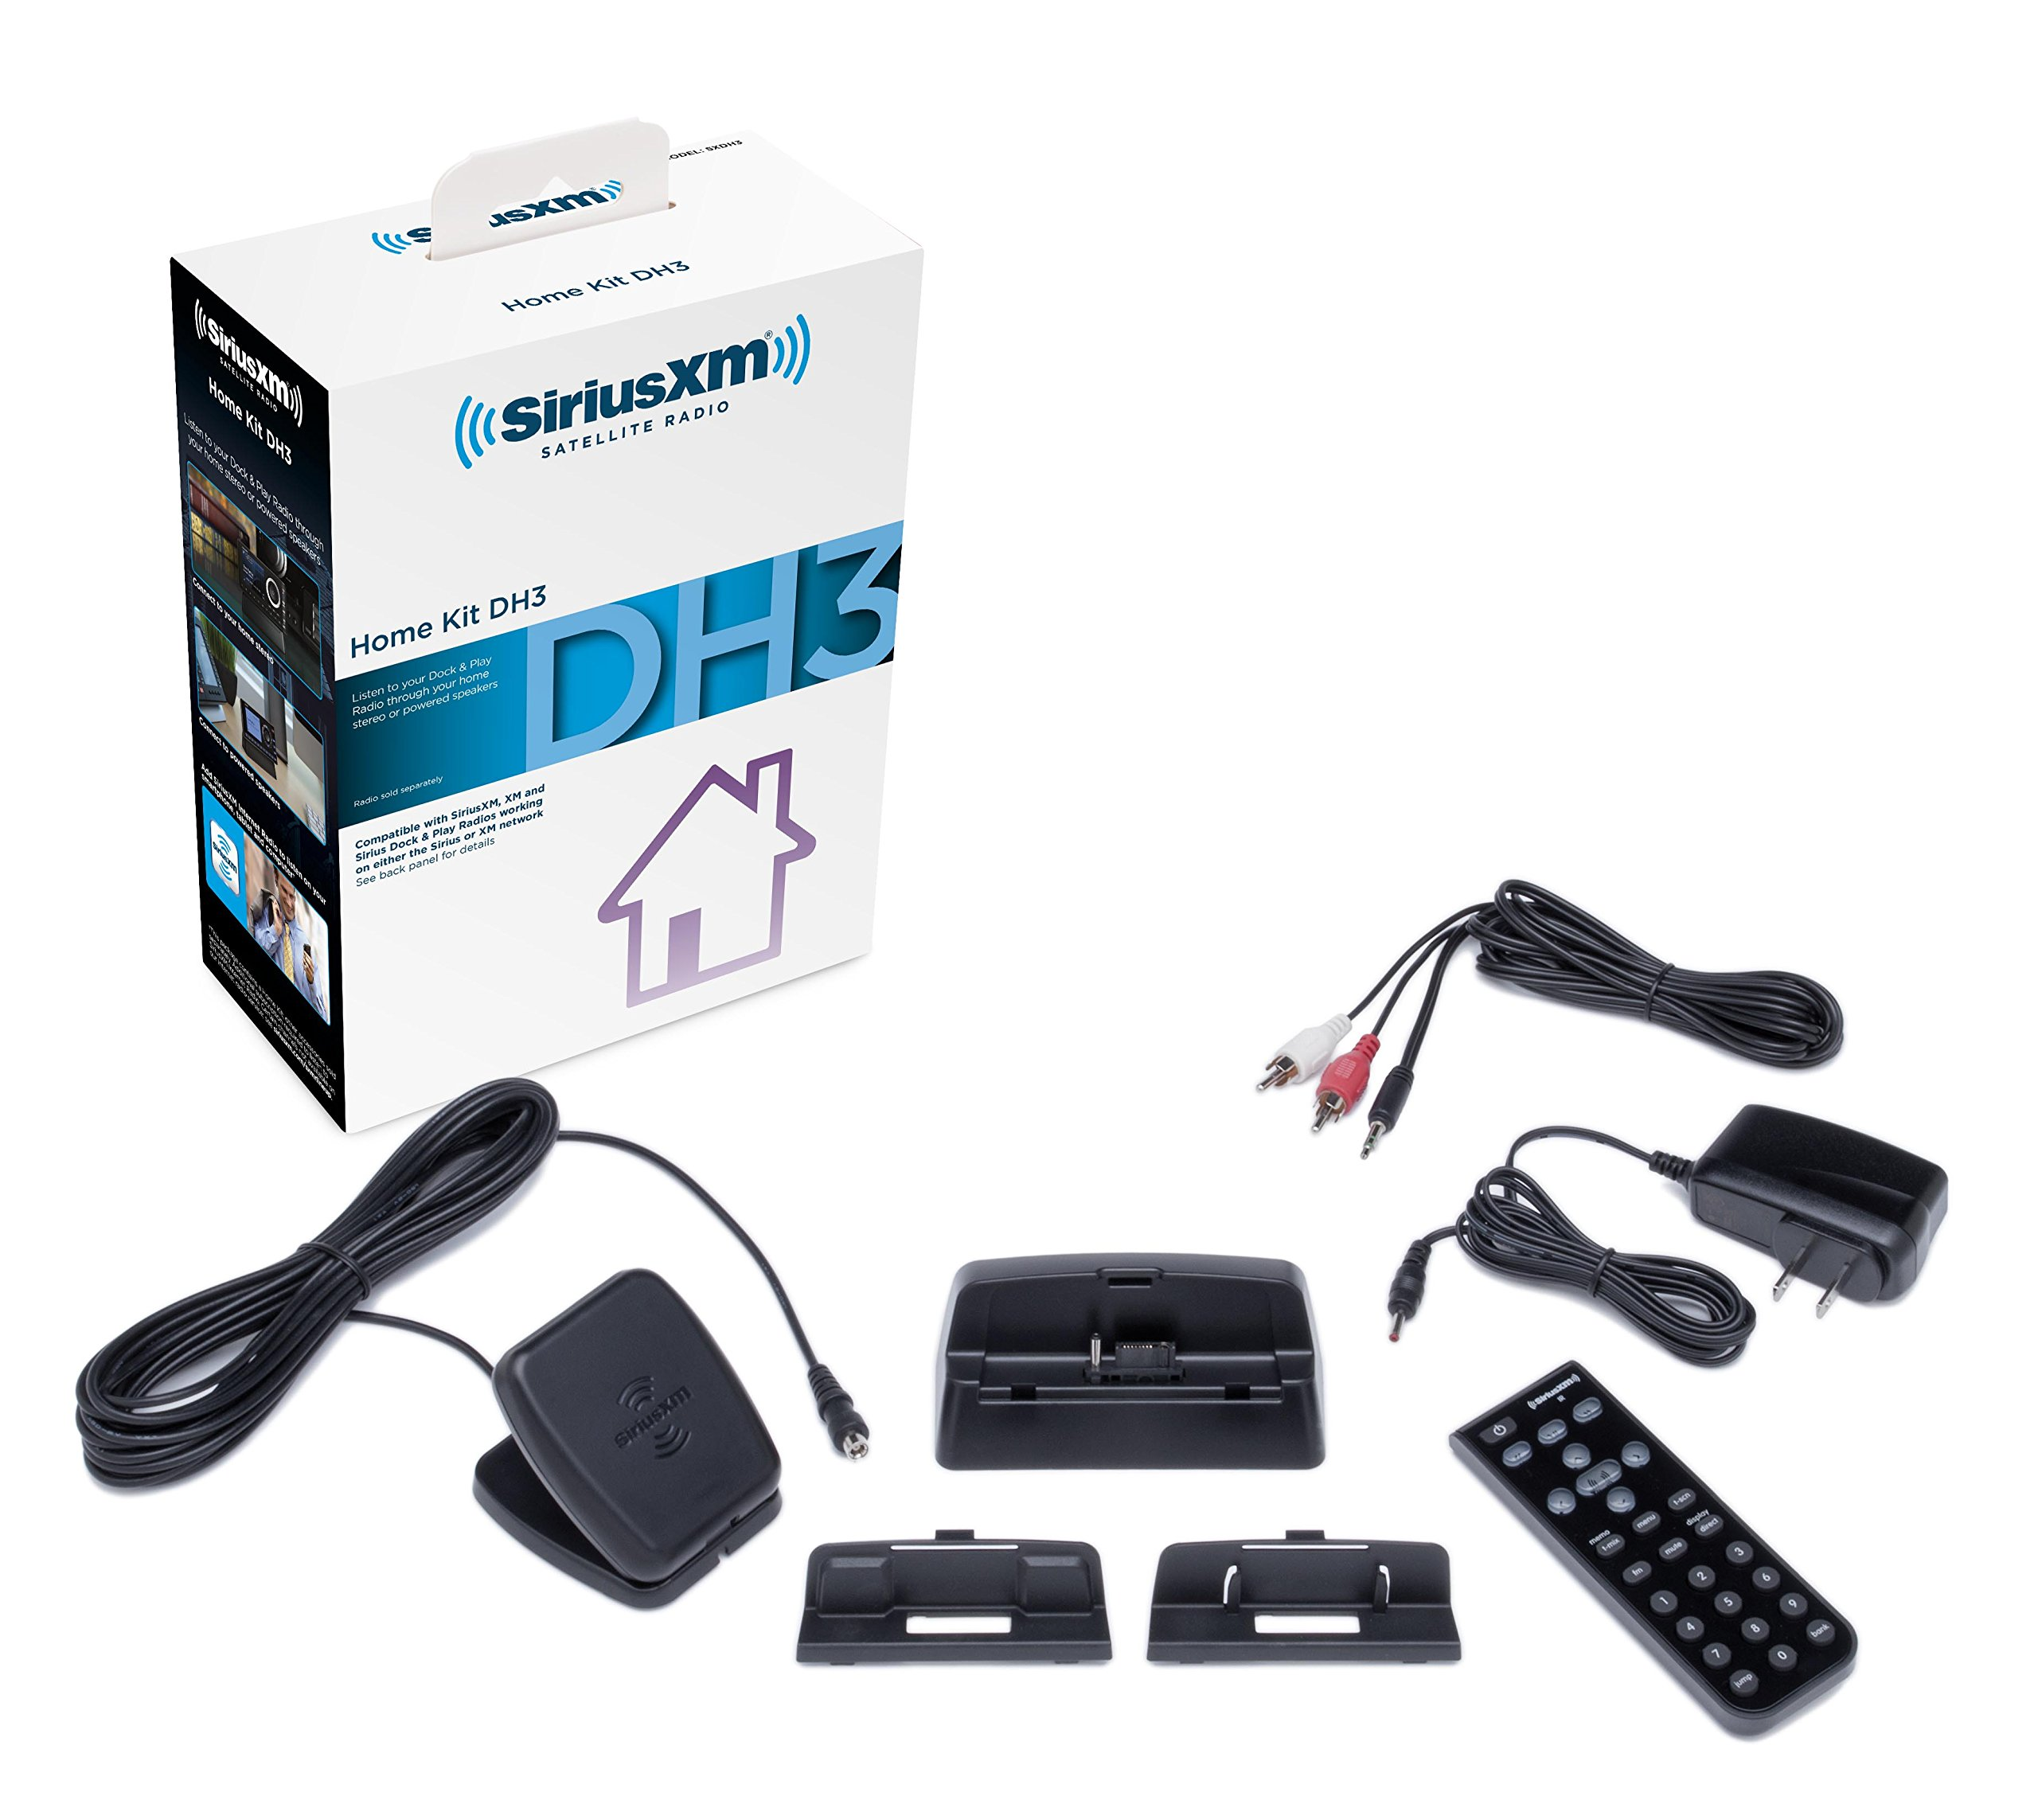 SiriusXM SXDH3 Satellite Radio Home Dock Kit with Antenna and Charging Cable (Black) by SiriusXM